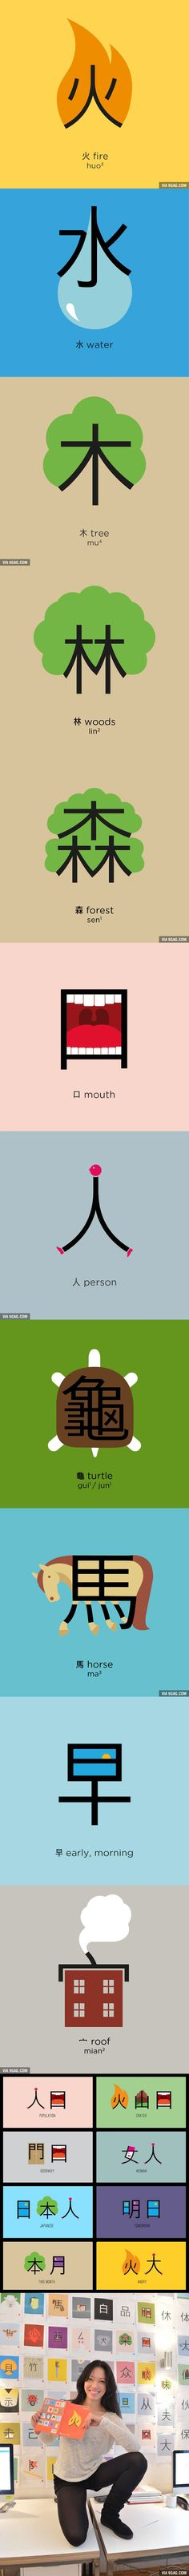 Playful Illustrations Make It Easy to Learn Chinese. By ShaoLan Hsueh. http://9gag.com/gag/a6wnWwN